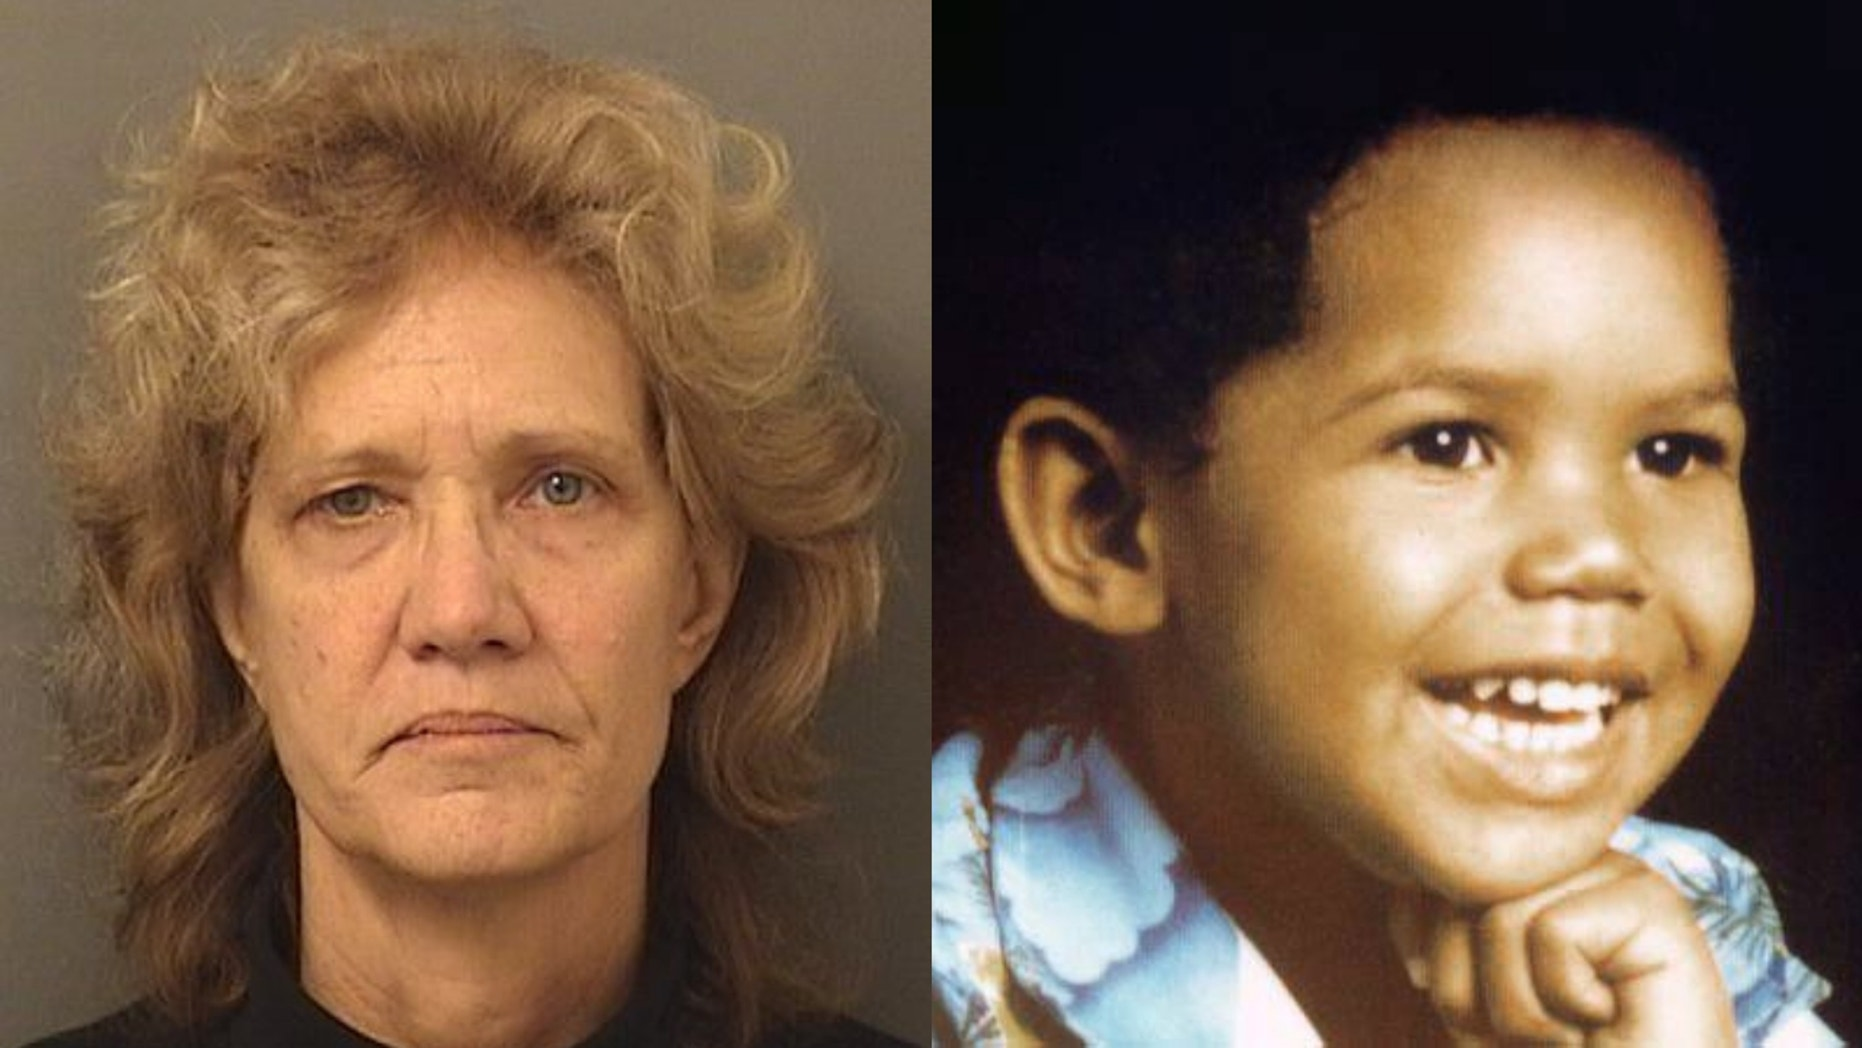 Amy Elizabeth Fleming, 60, was arrested in the 1986 murder of her son, Francillon Pierre.